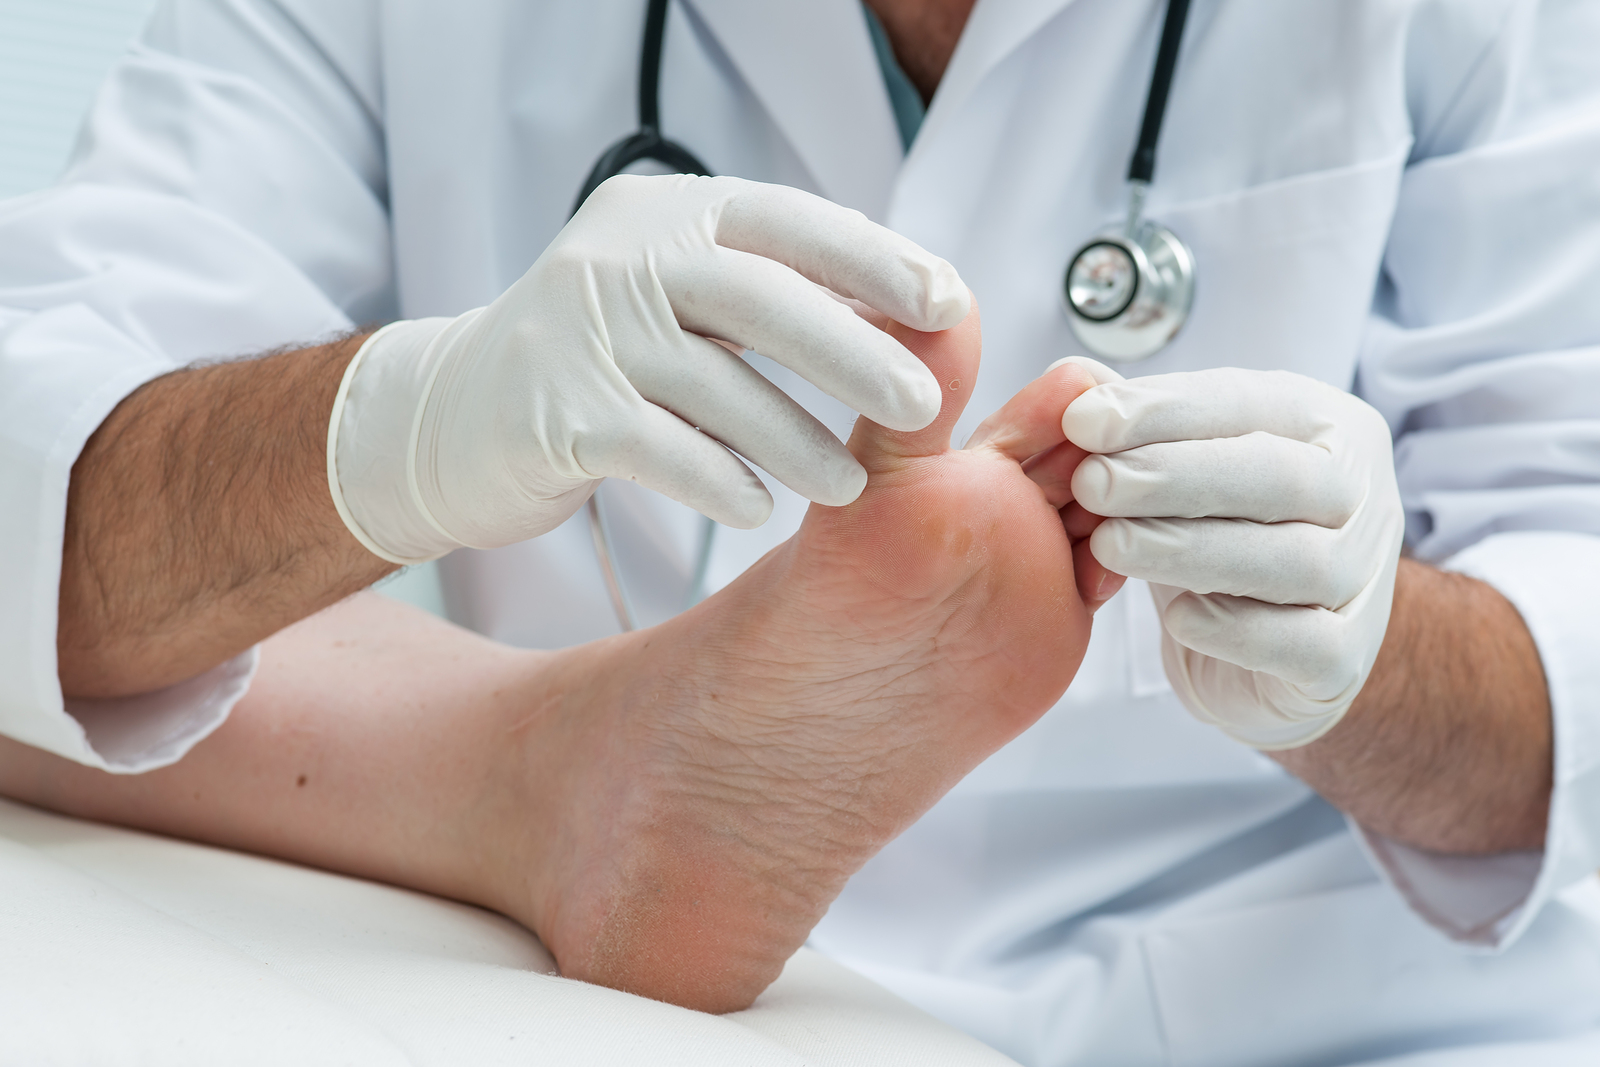 Doctor dermatologist examines the foot on the presence of athlete